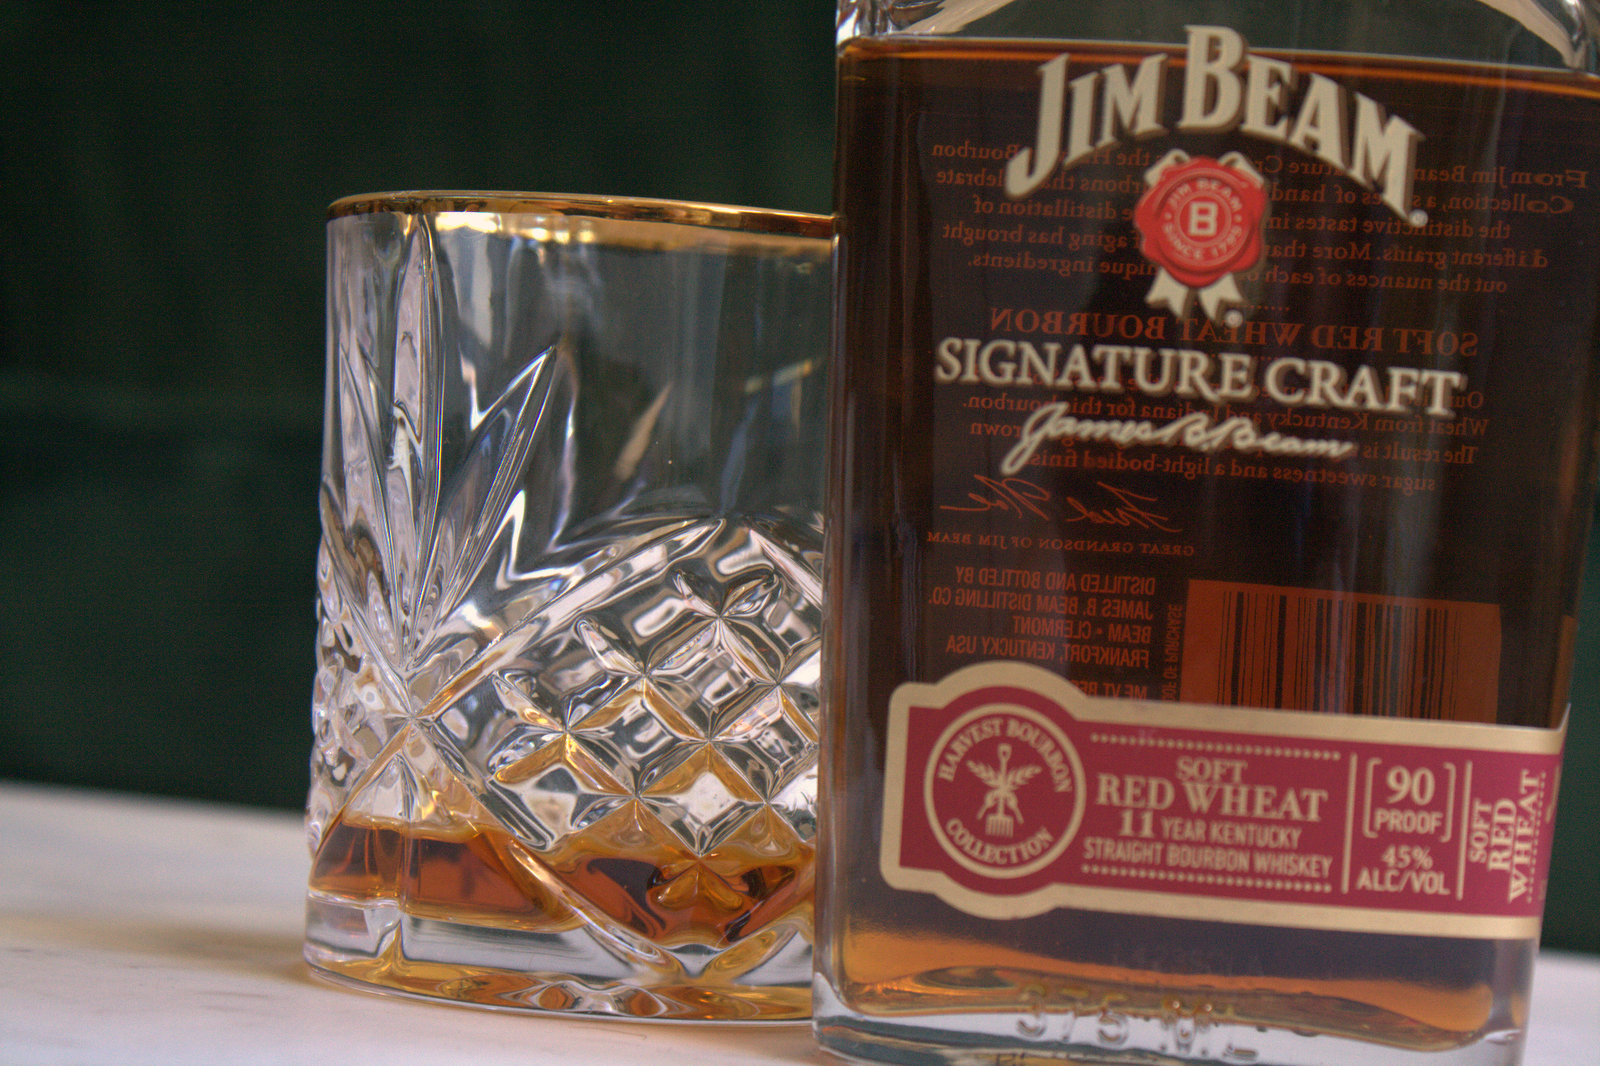 Jim Beam Signature Craft Red Wheat Review Fine Tobacco Nyc